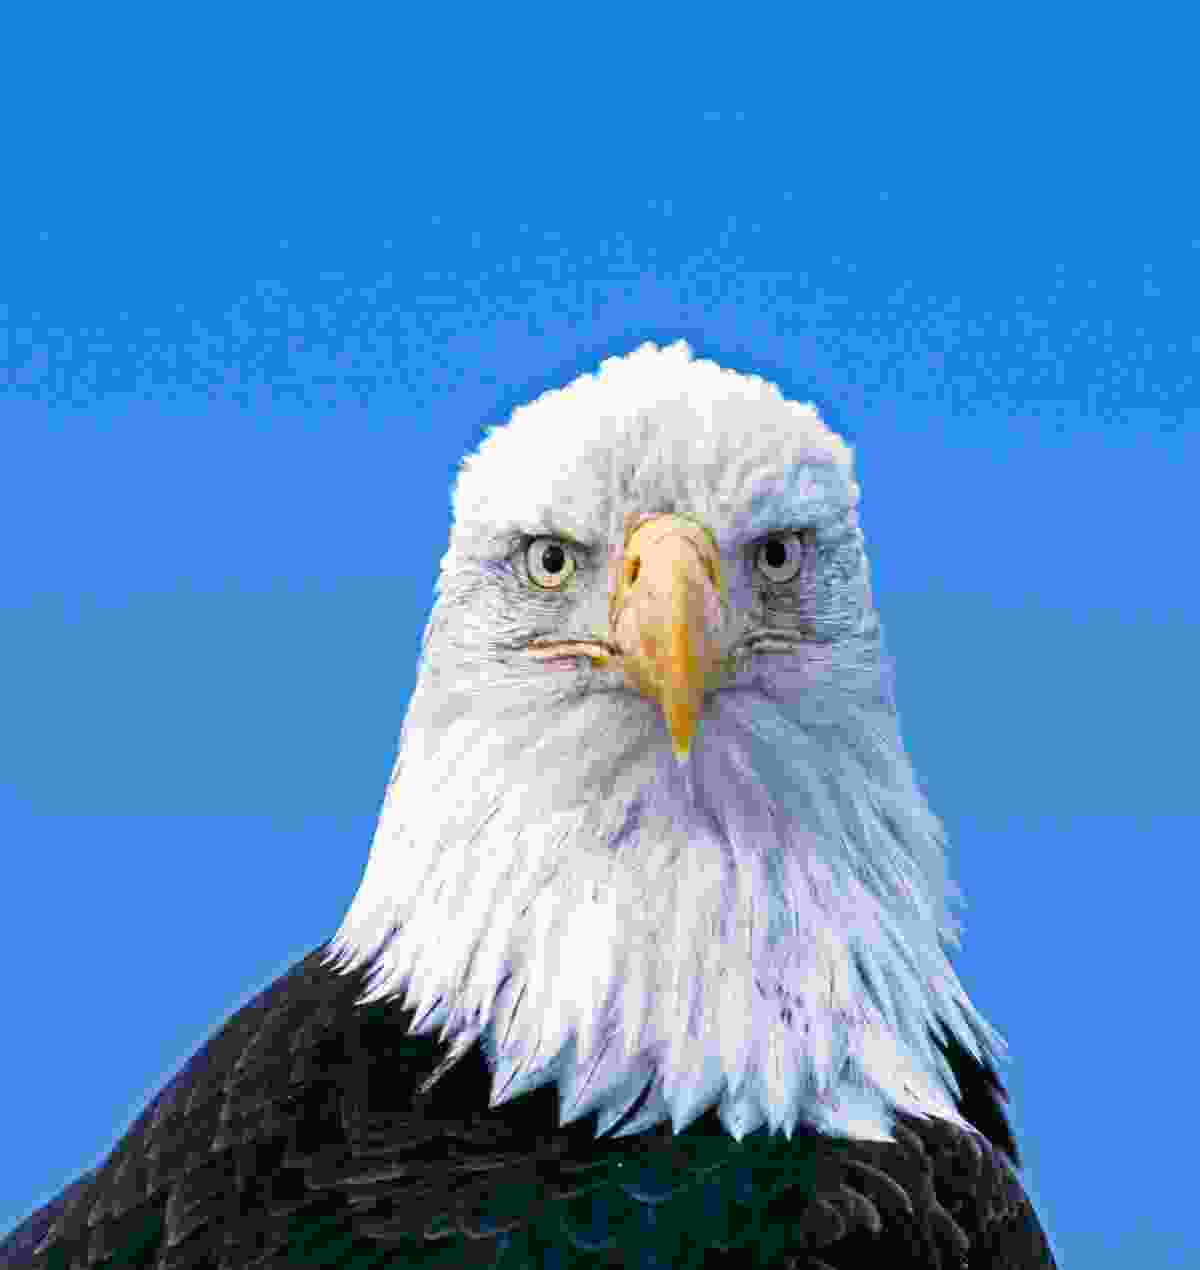 Few creatures are more emblematic than the bald eagle, known worldwide as the national bird of the United States (David Tipling)